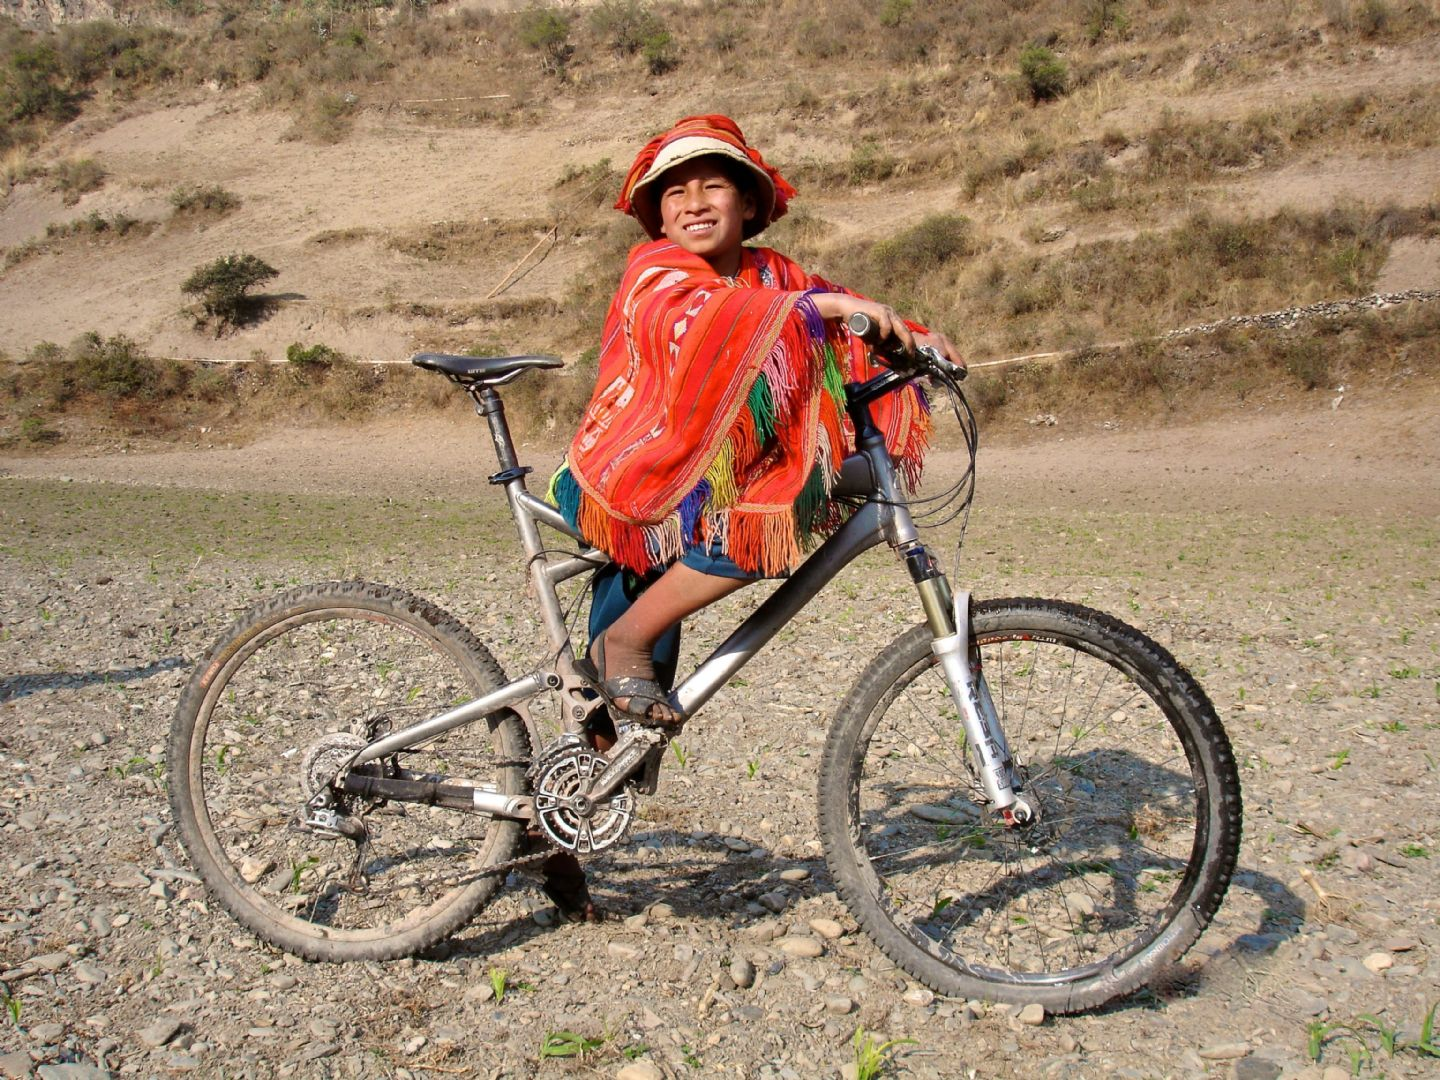 262a.jpg - Peru - Andes, Amazon and Machu Picchu - Cycling Adventures